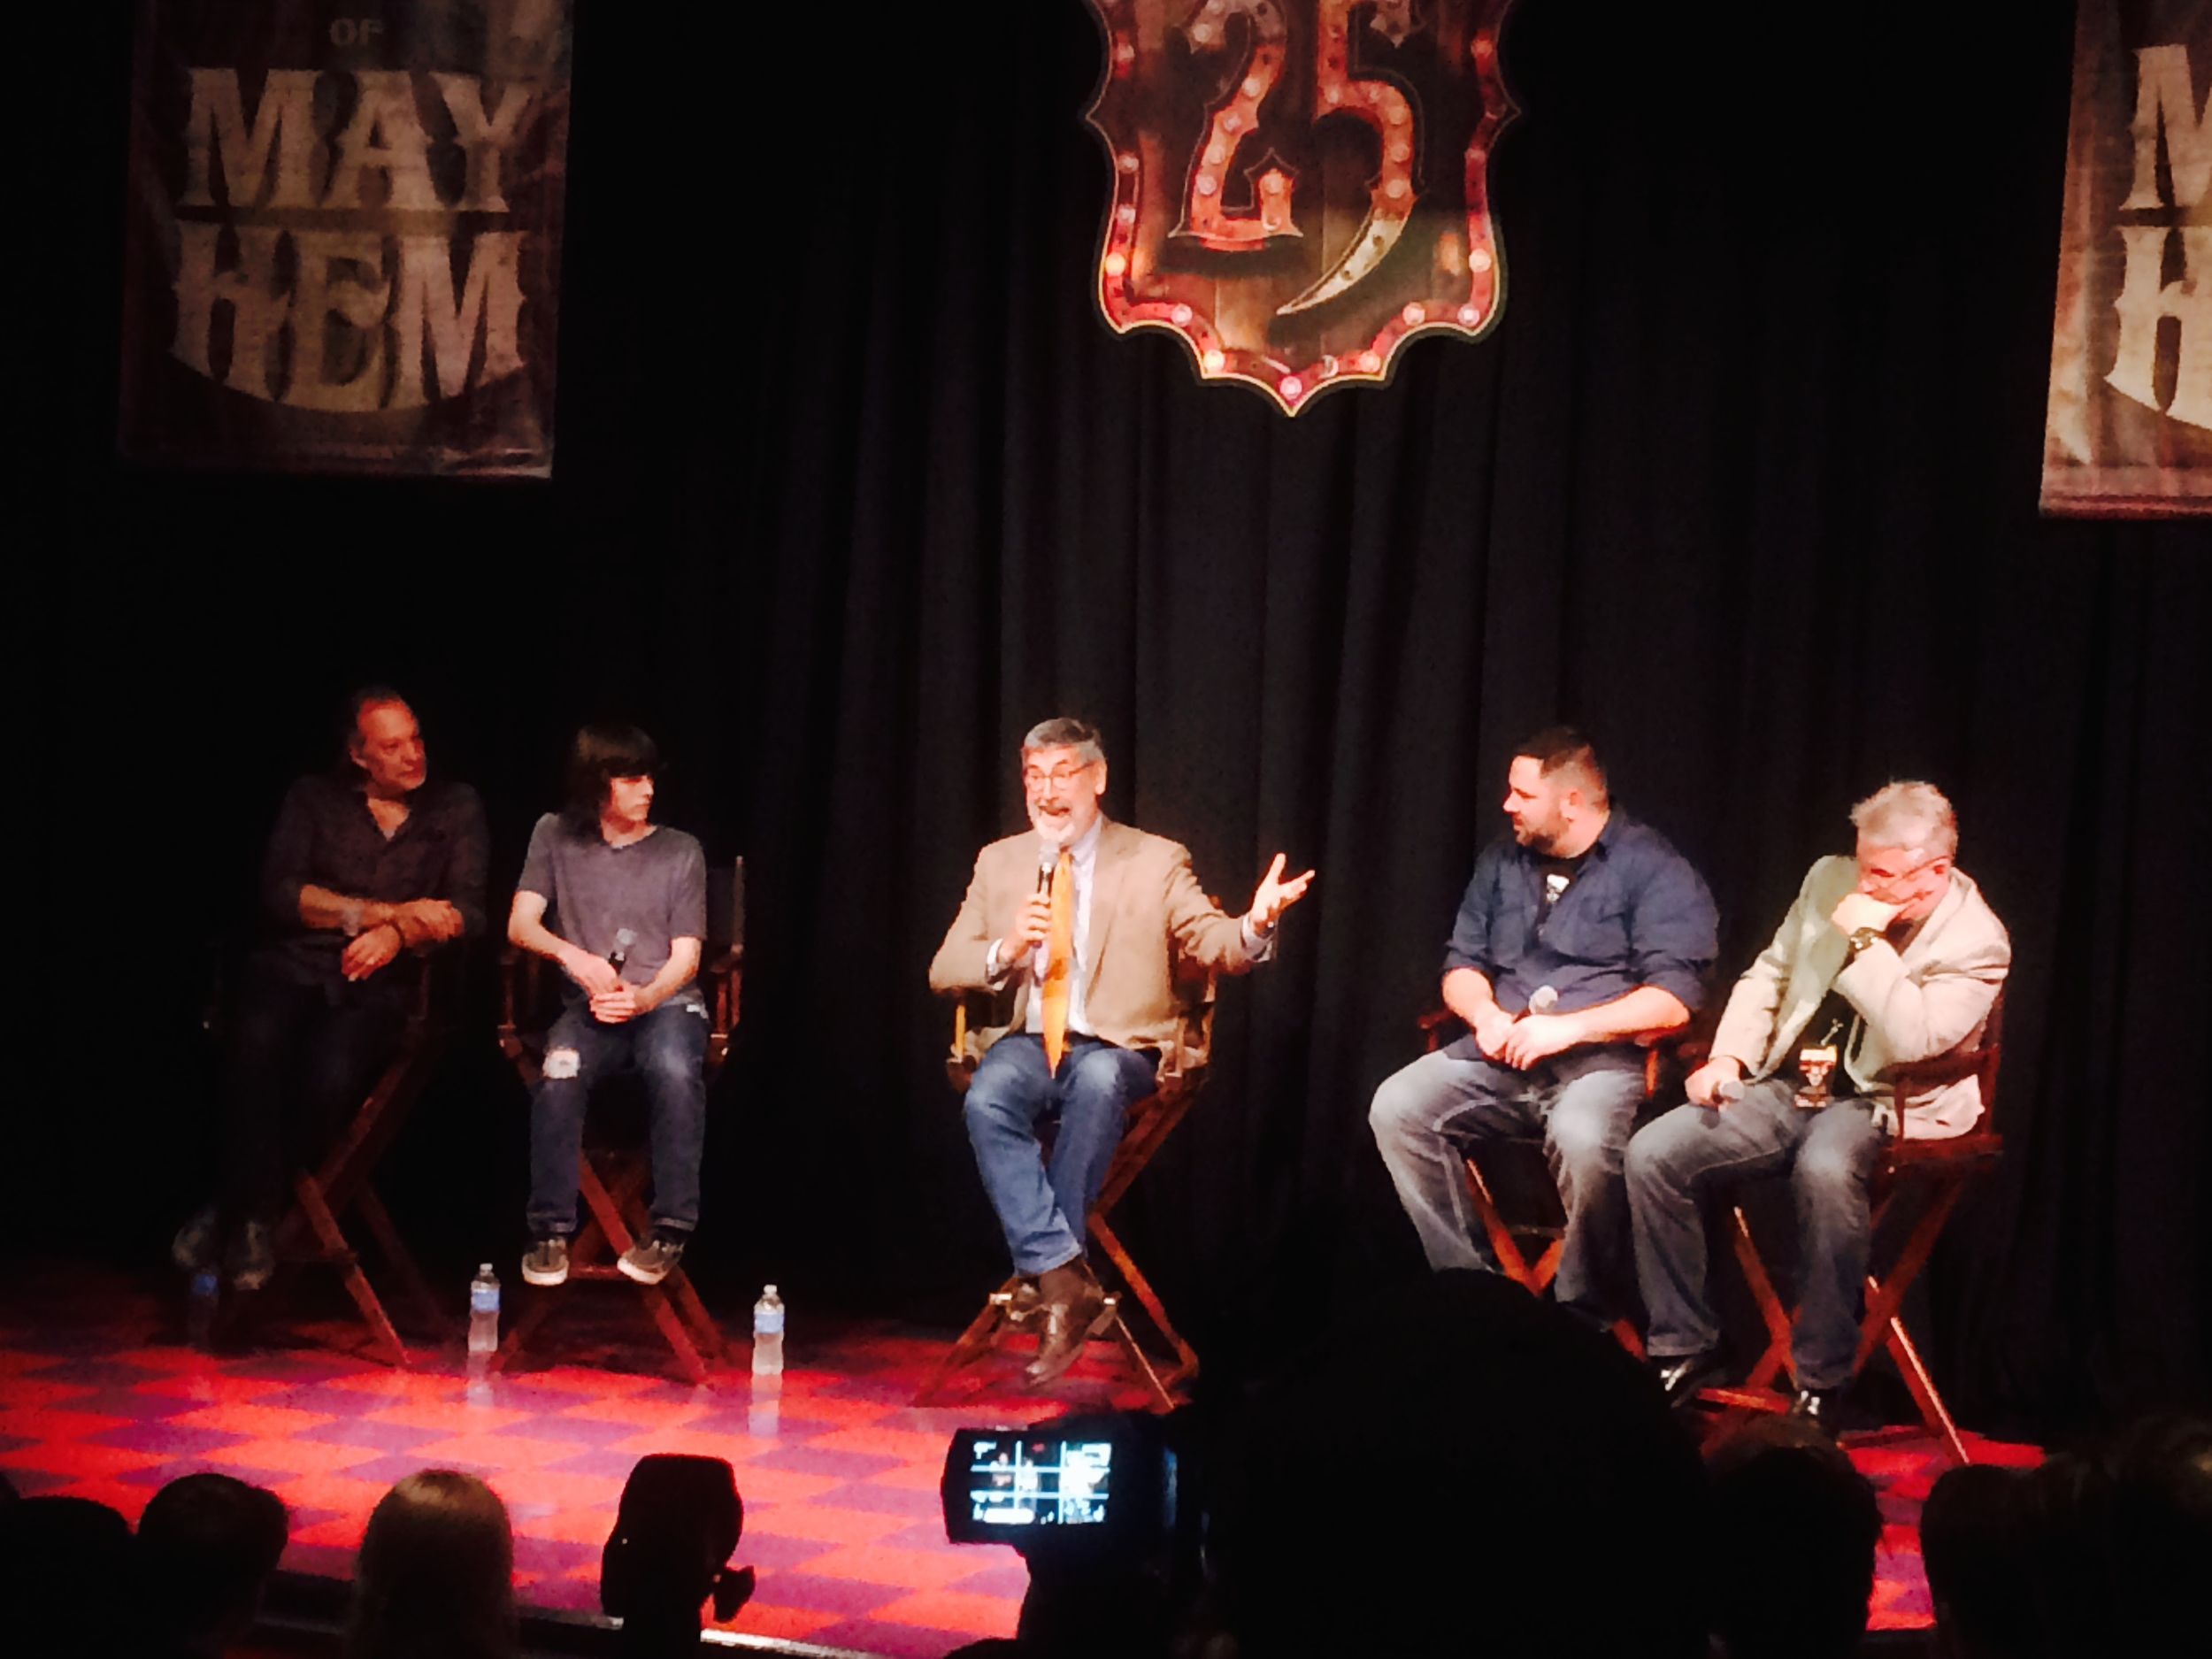 From left to right: Greg Nicotero, Chandler Riggs, John Landis, Mike Aiello and Jim Timon.